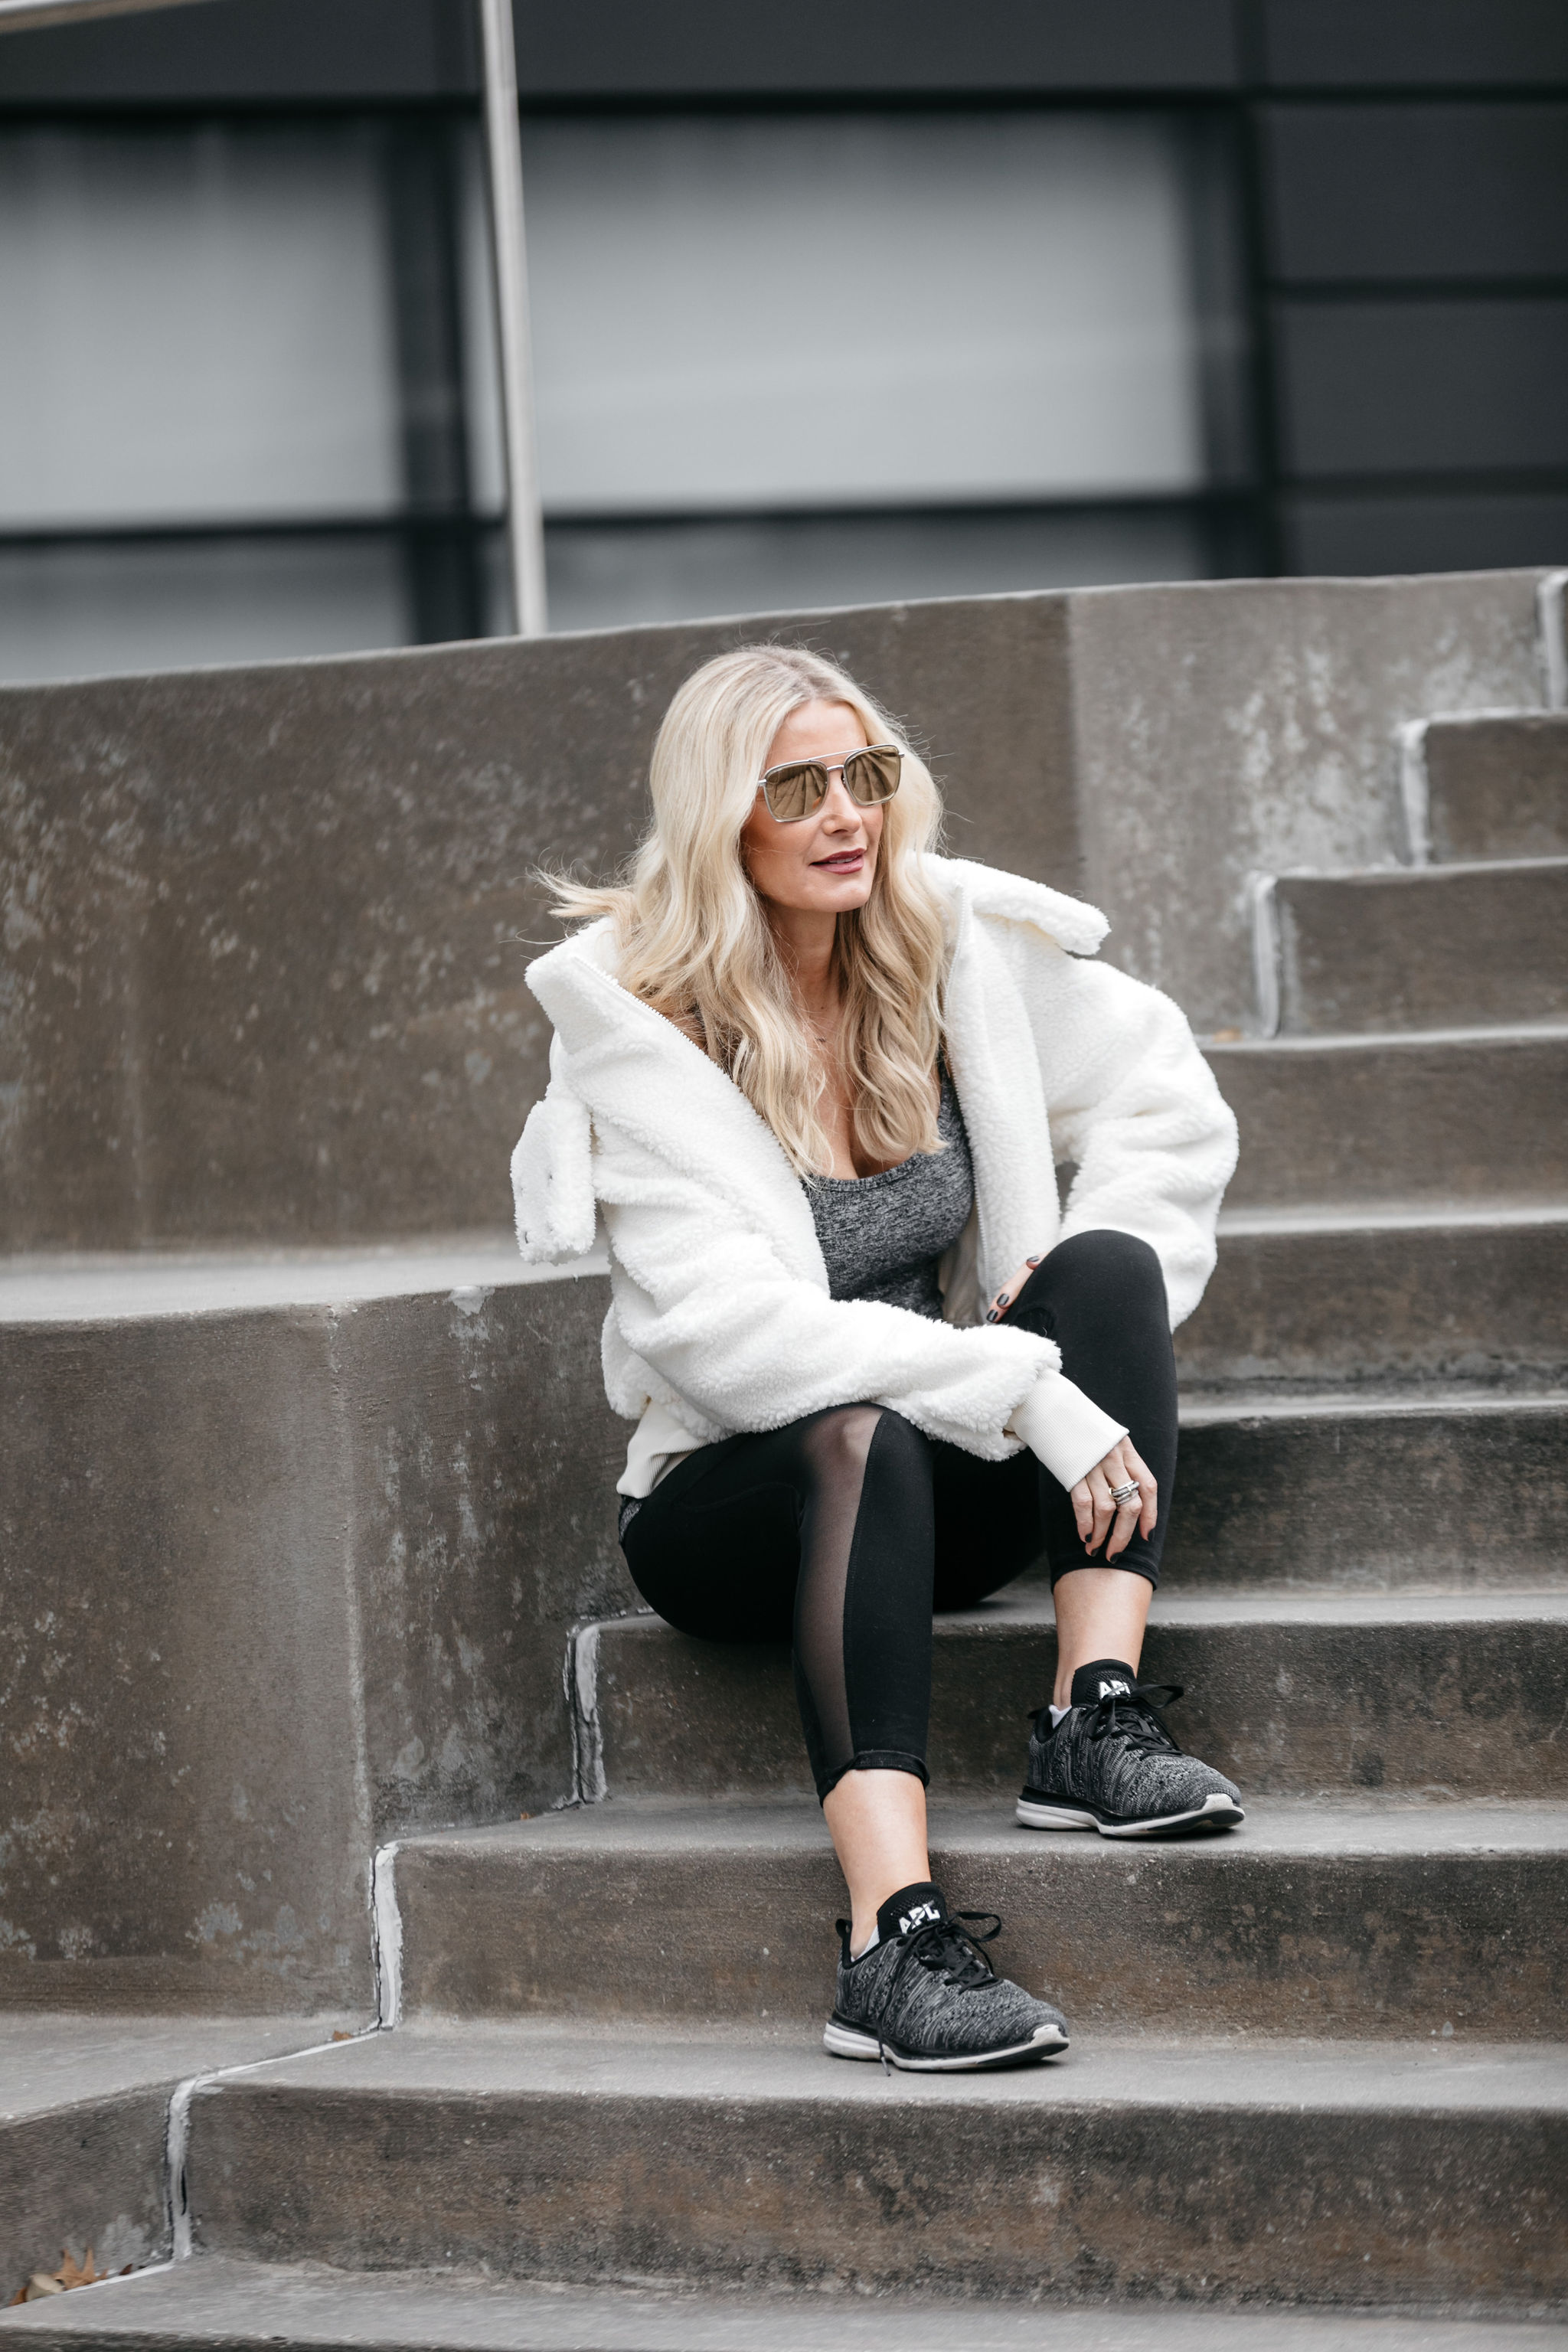 Dallas fitness blogger wearing teddy coat and black leggings